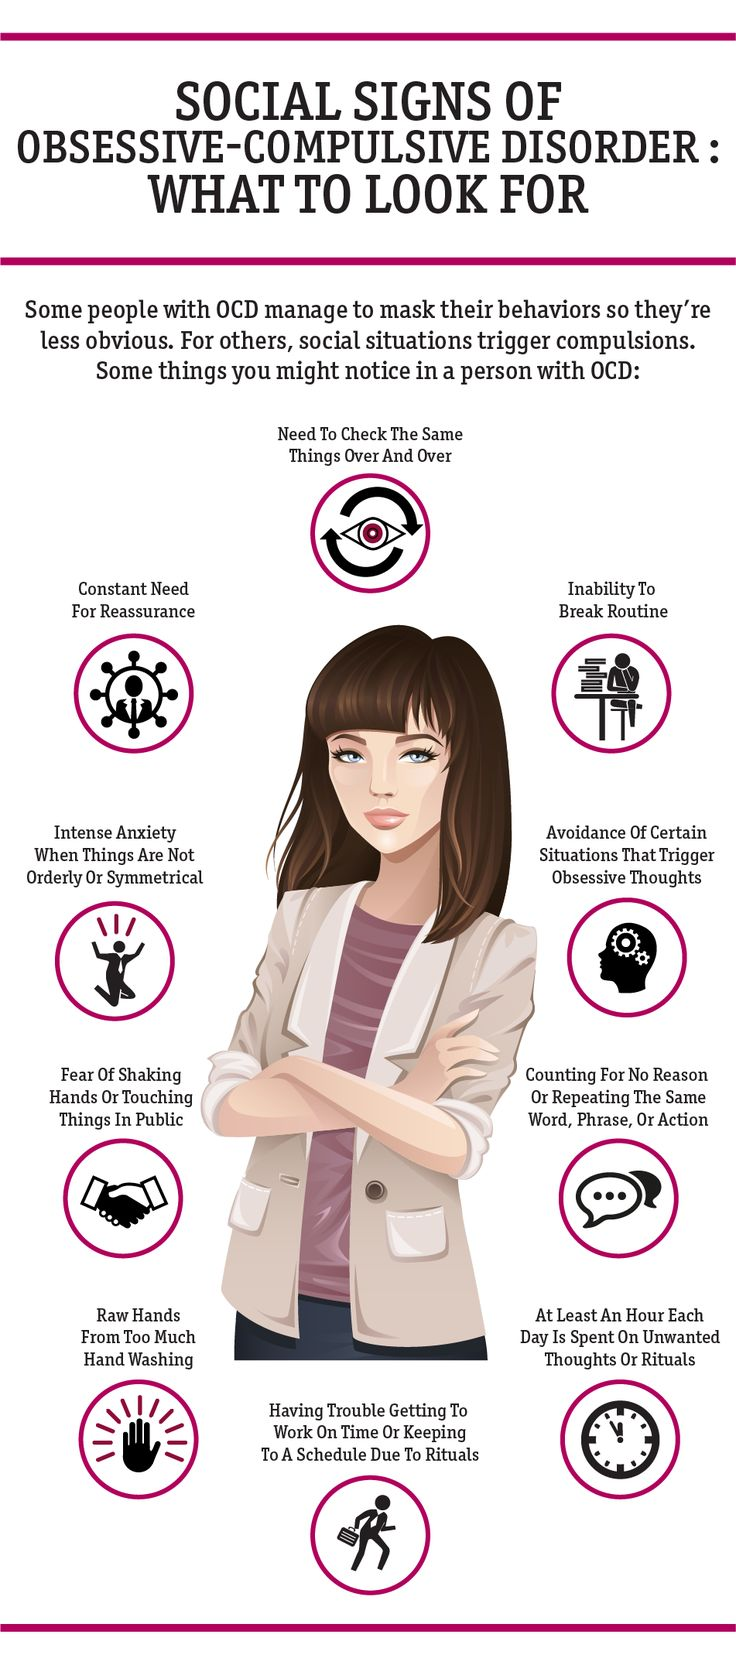 Signs and symptoms of obsessive compulsive disorder. Do you recognise any of these symptoms in employees?